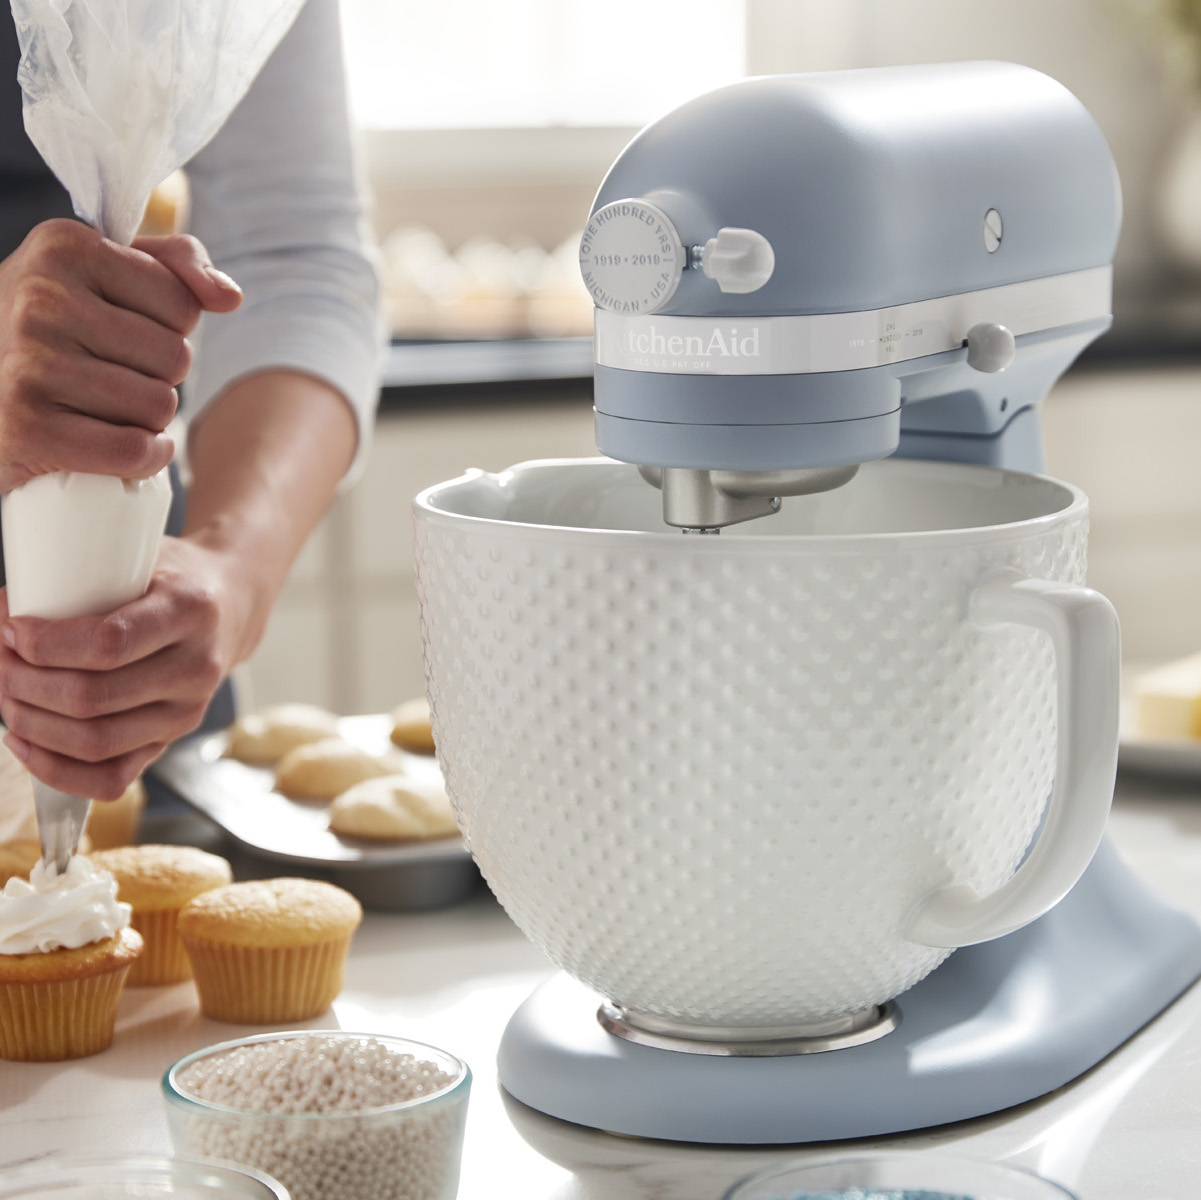 KitchenAid Just Released a Retro-Inspired Mixer Color to Celebrate the Brand's 100th Anniversary kitchenaid-misty-blue-XL-BLOG0818